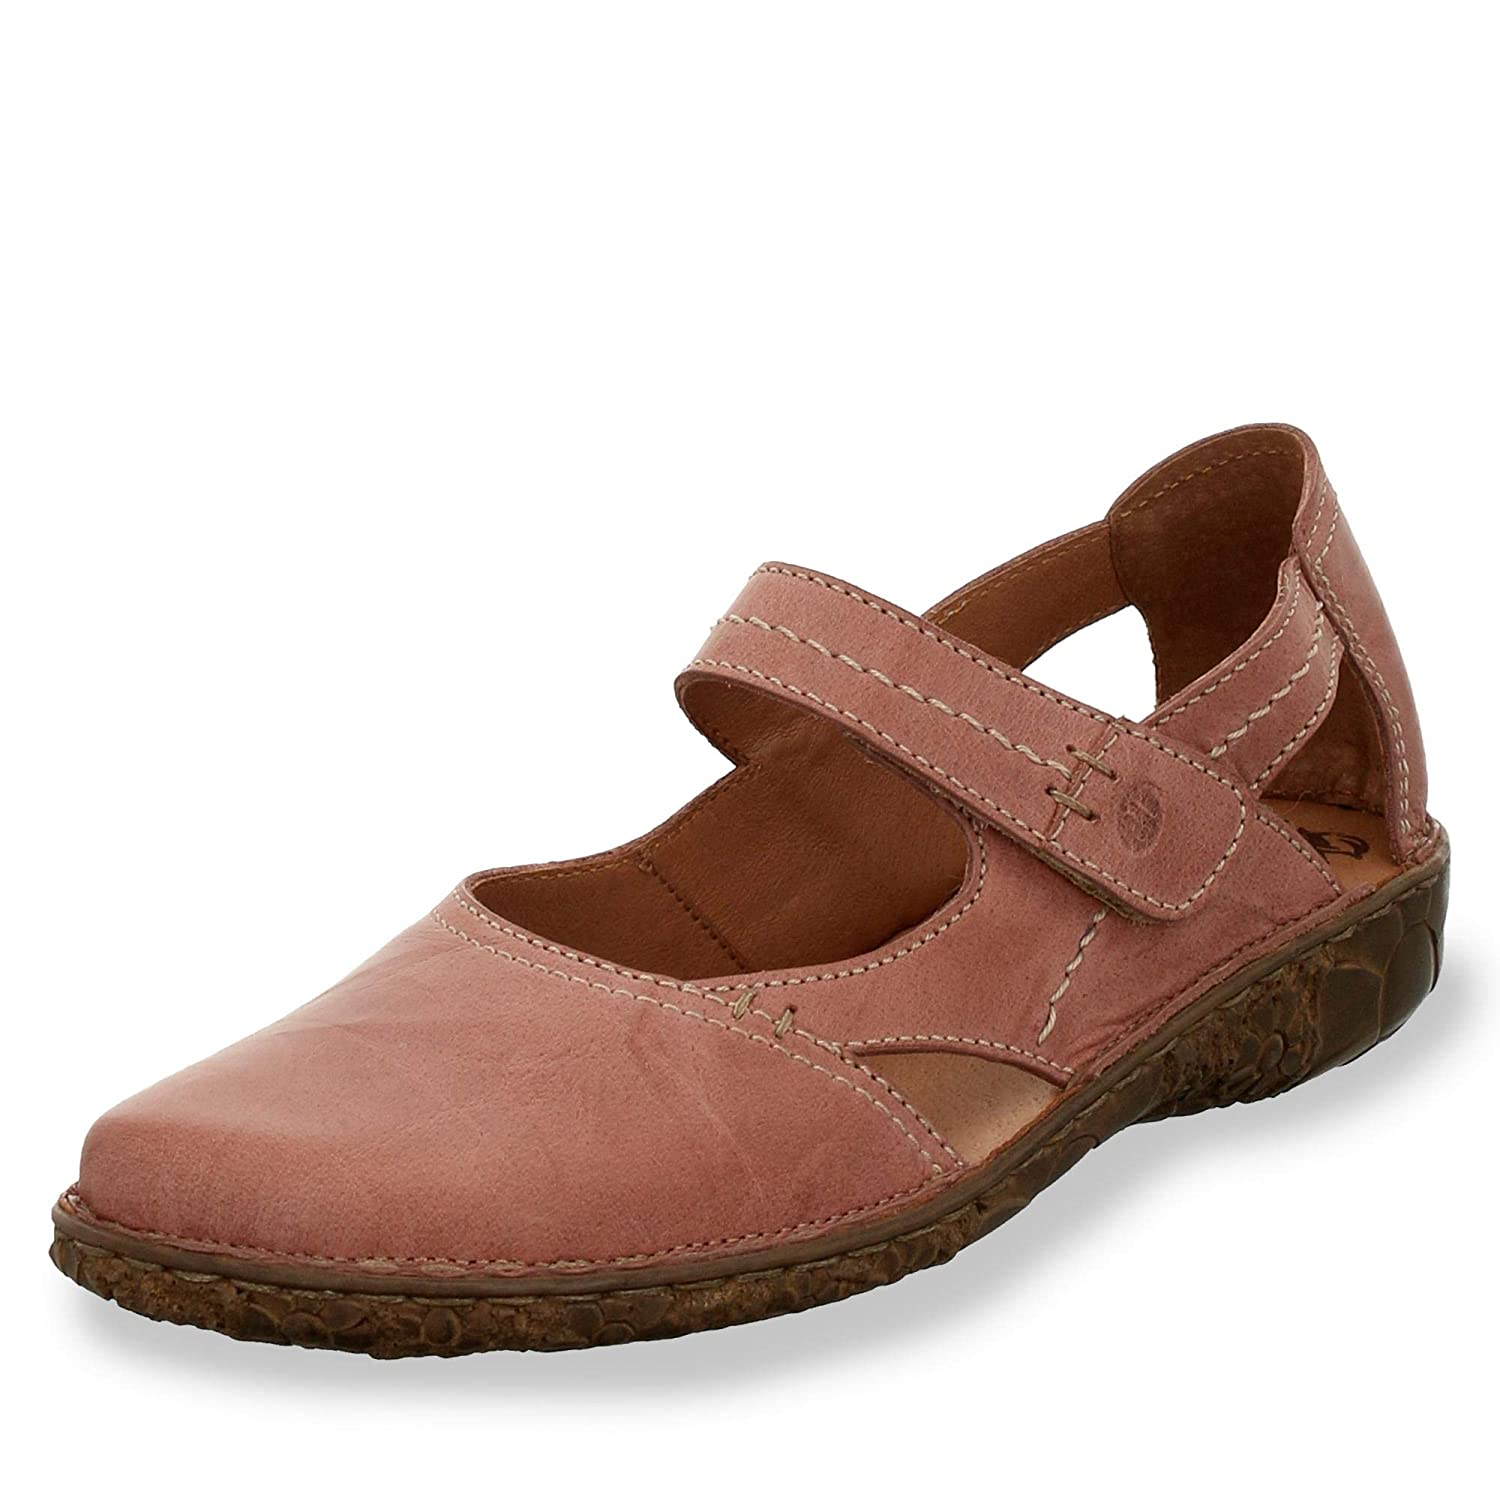 pink Josef Seibel Women's pinklie 37 Mary Jane shoes